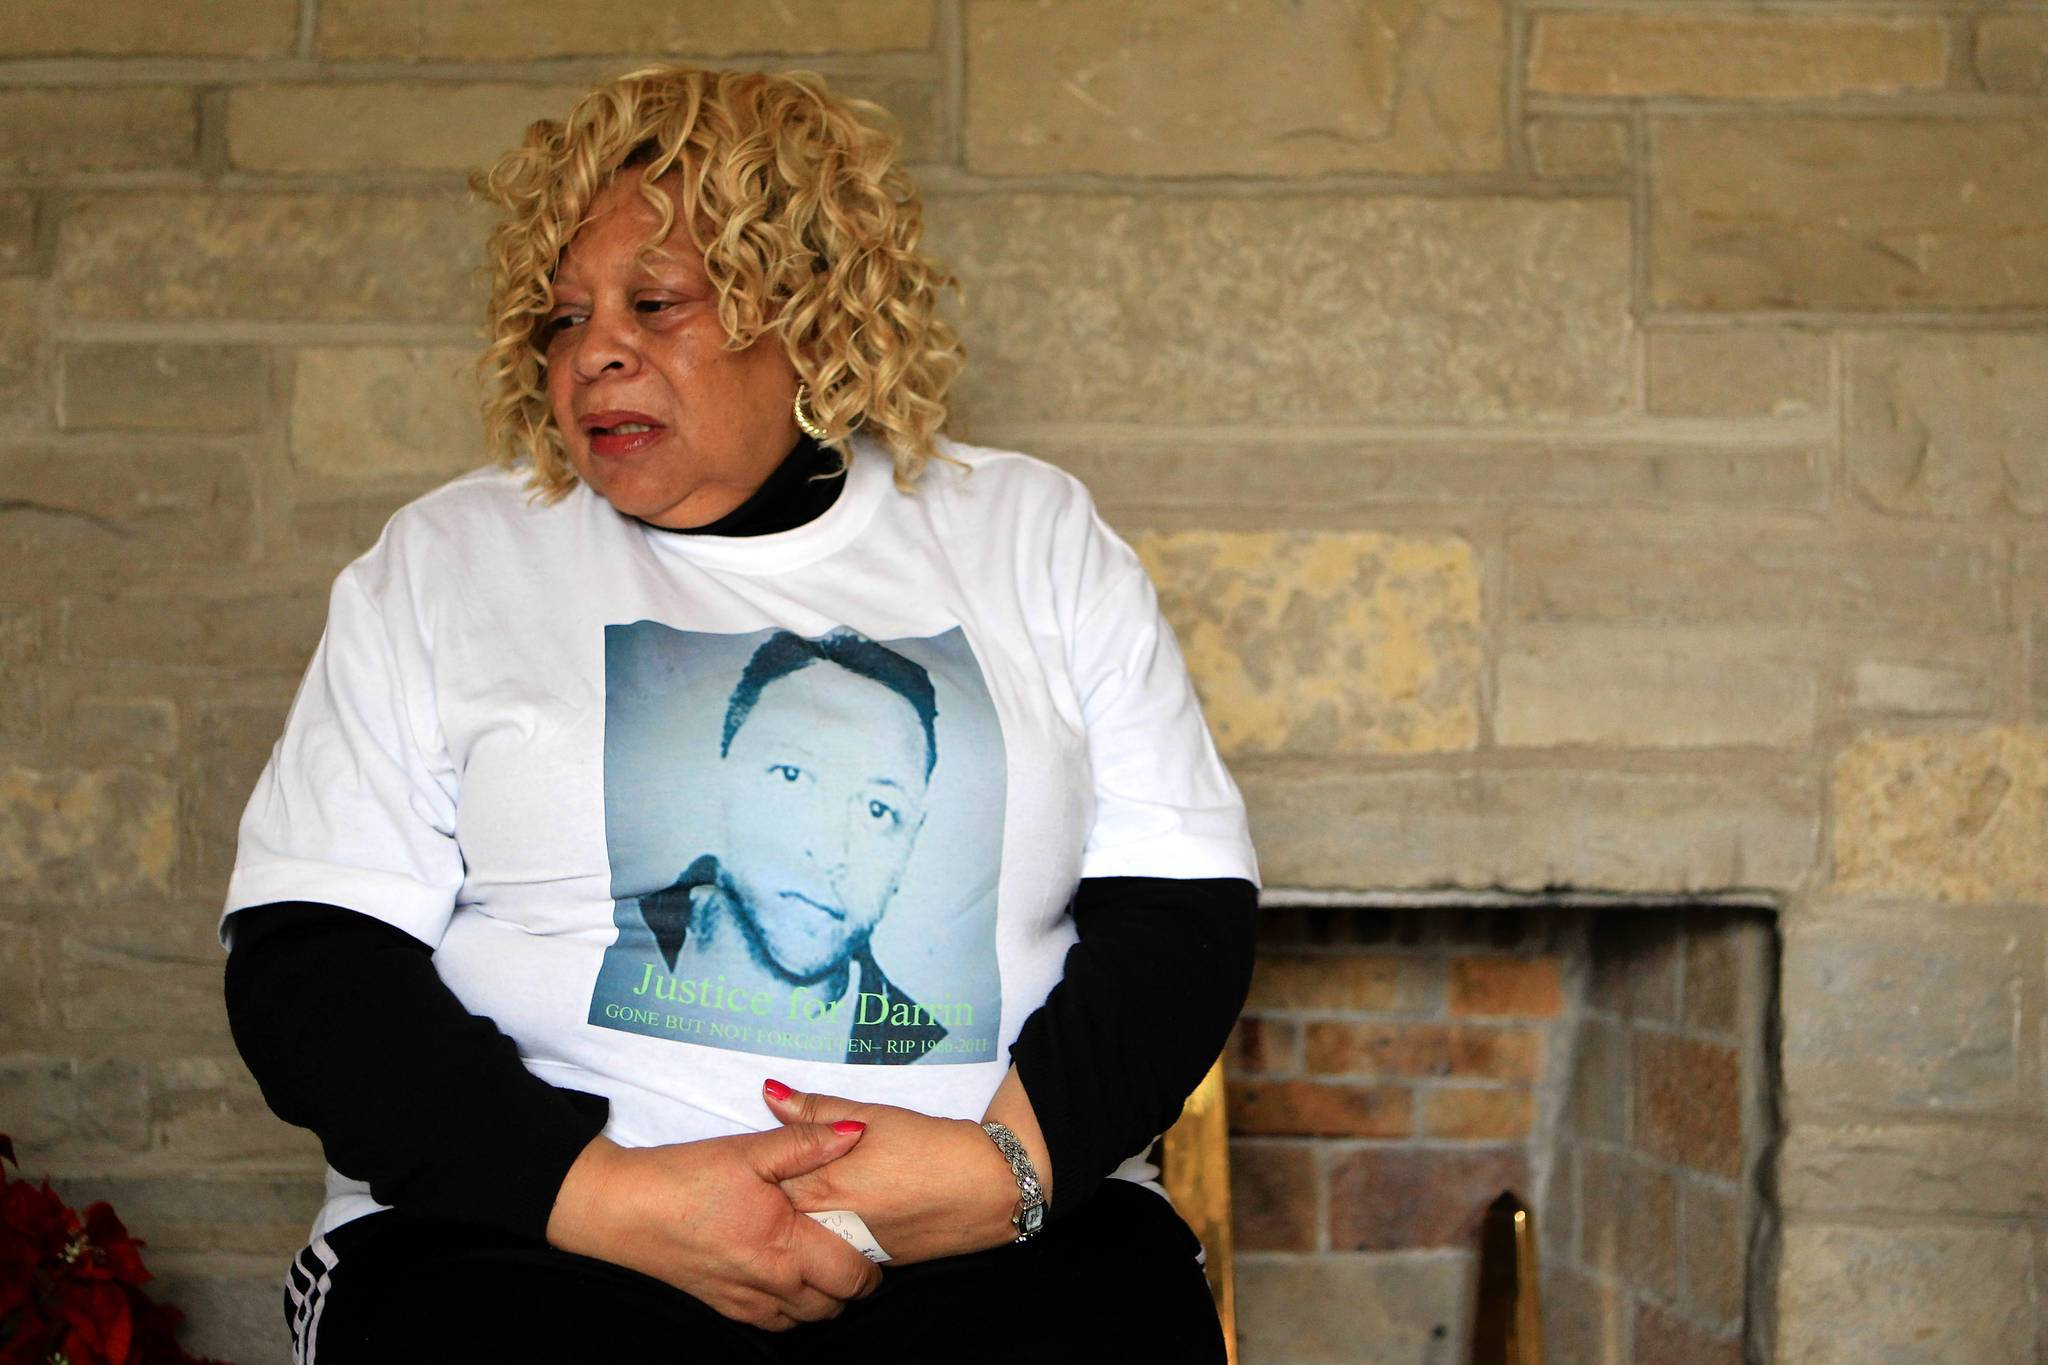 Gloria Carr, mother of Dannin Hanna, wears a shirt honoring her son in 2011.